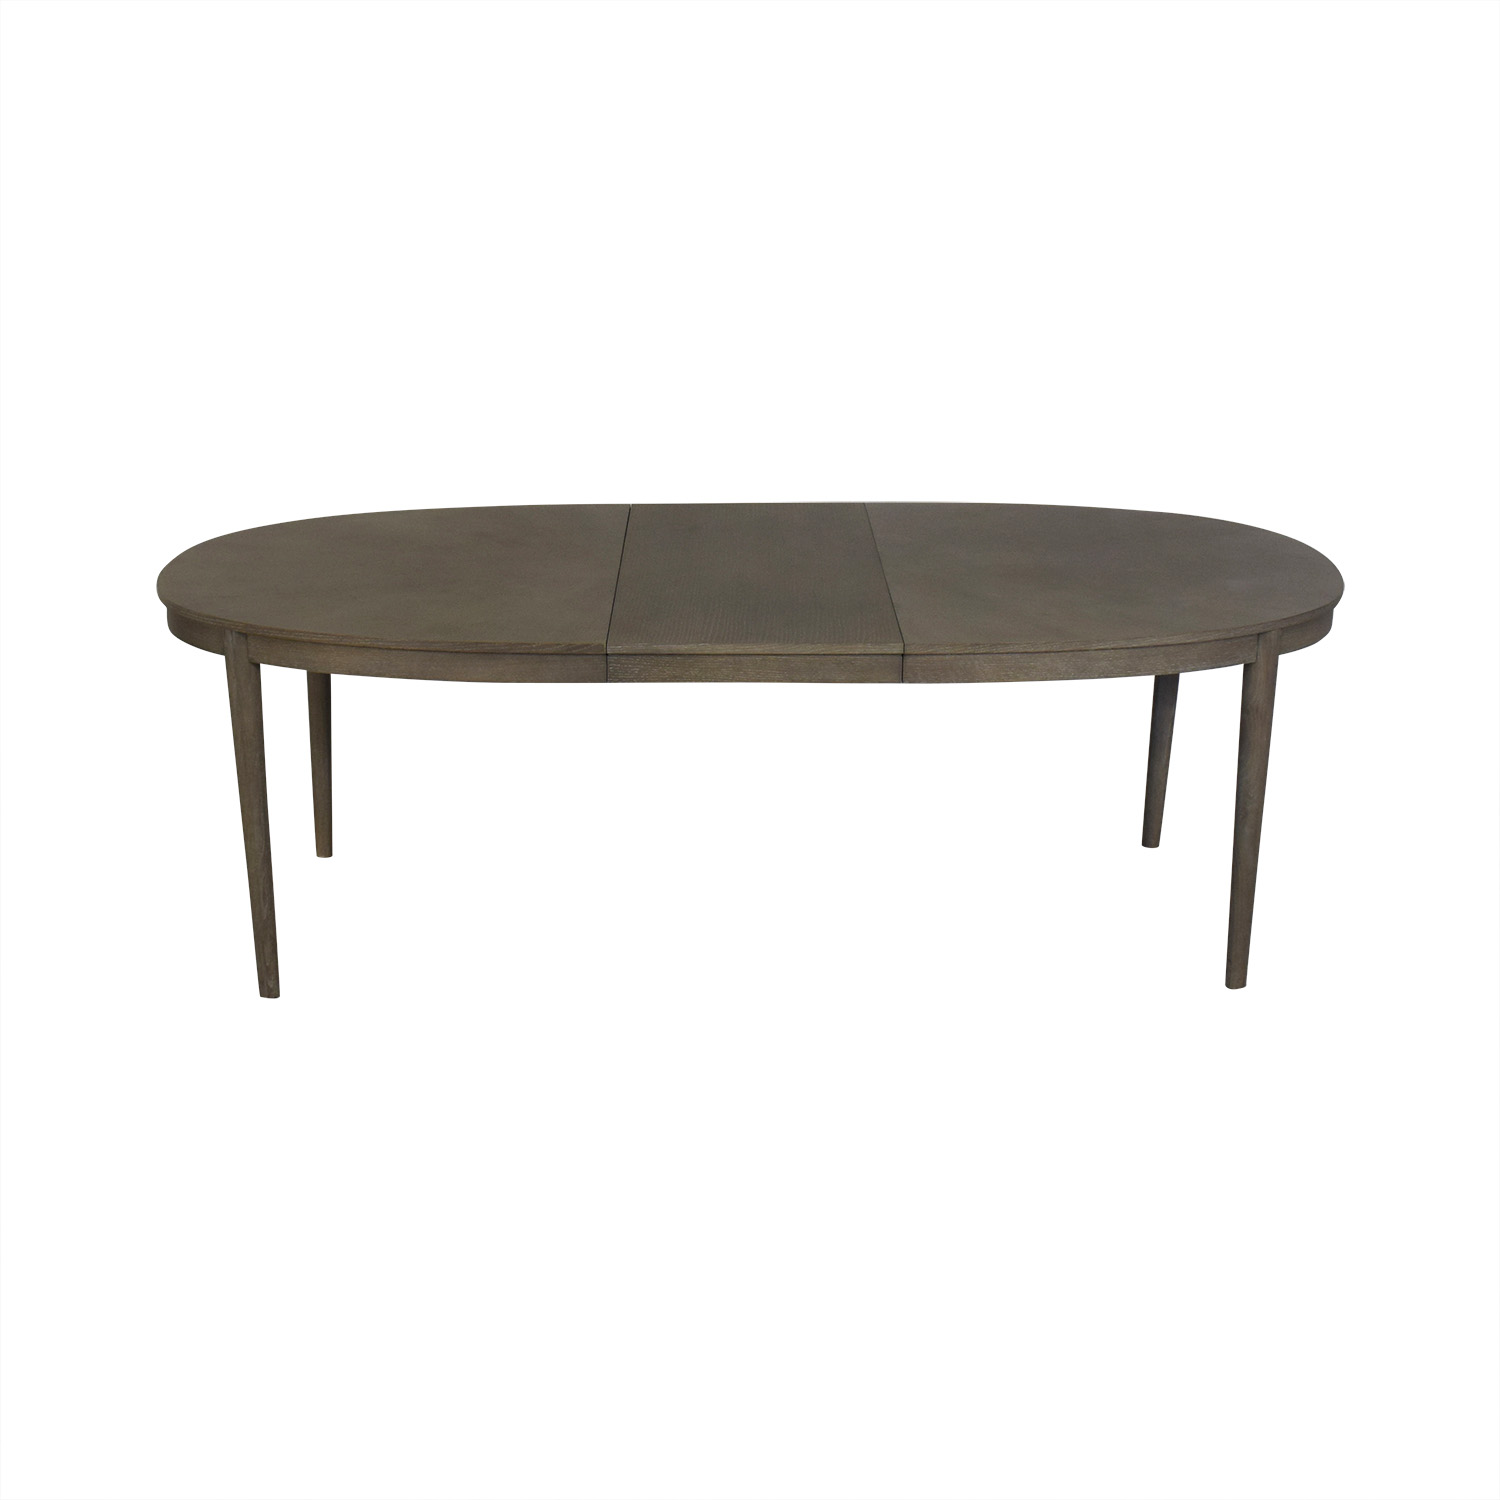 West Elm West Elm Grey Starburst Expandable Table price